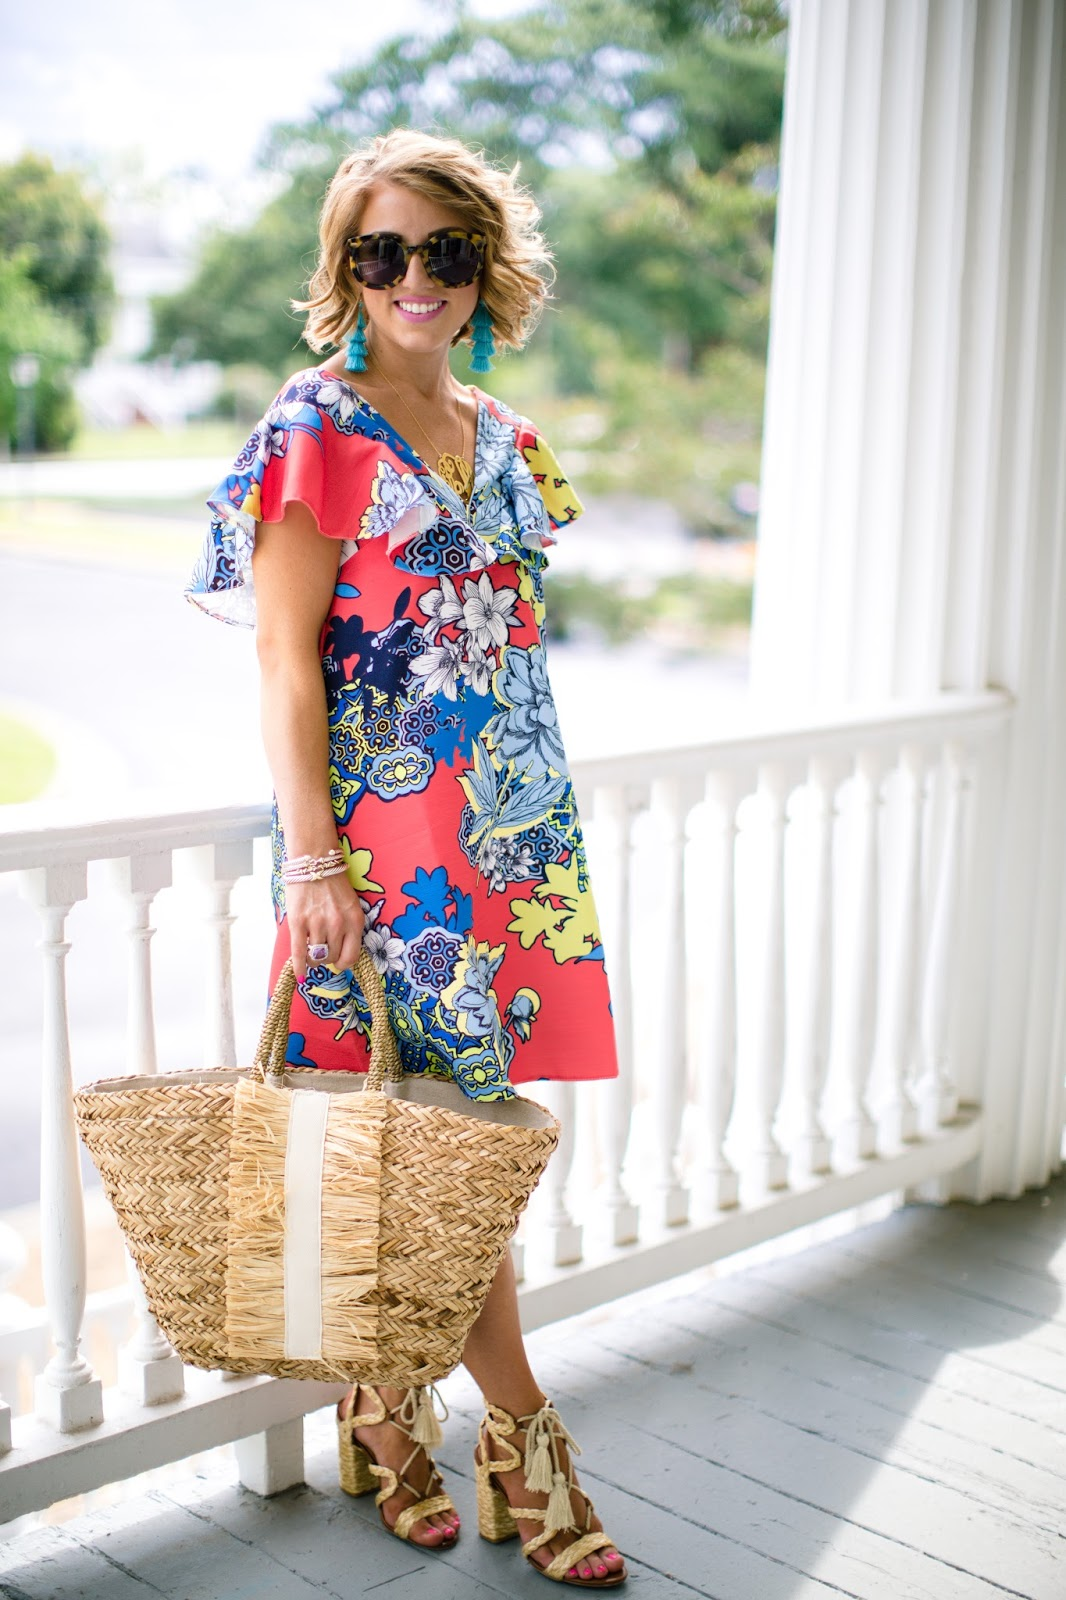 Ruffle Shift Dress - Click through to see more on Something Delightful Blog!